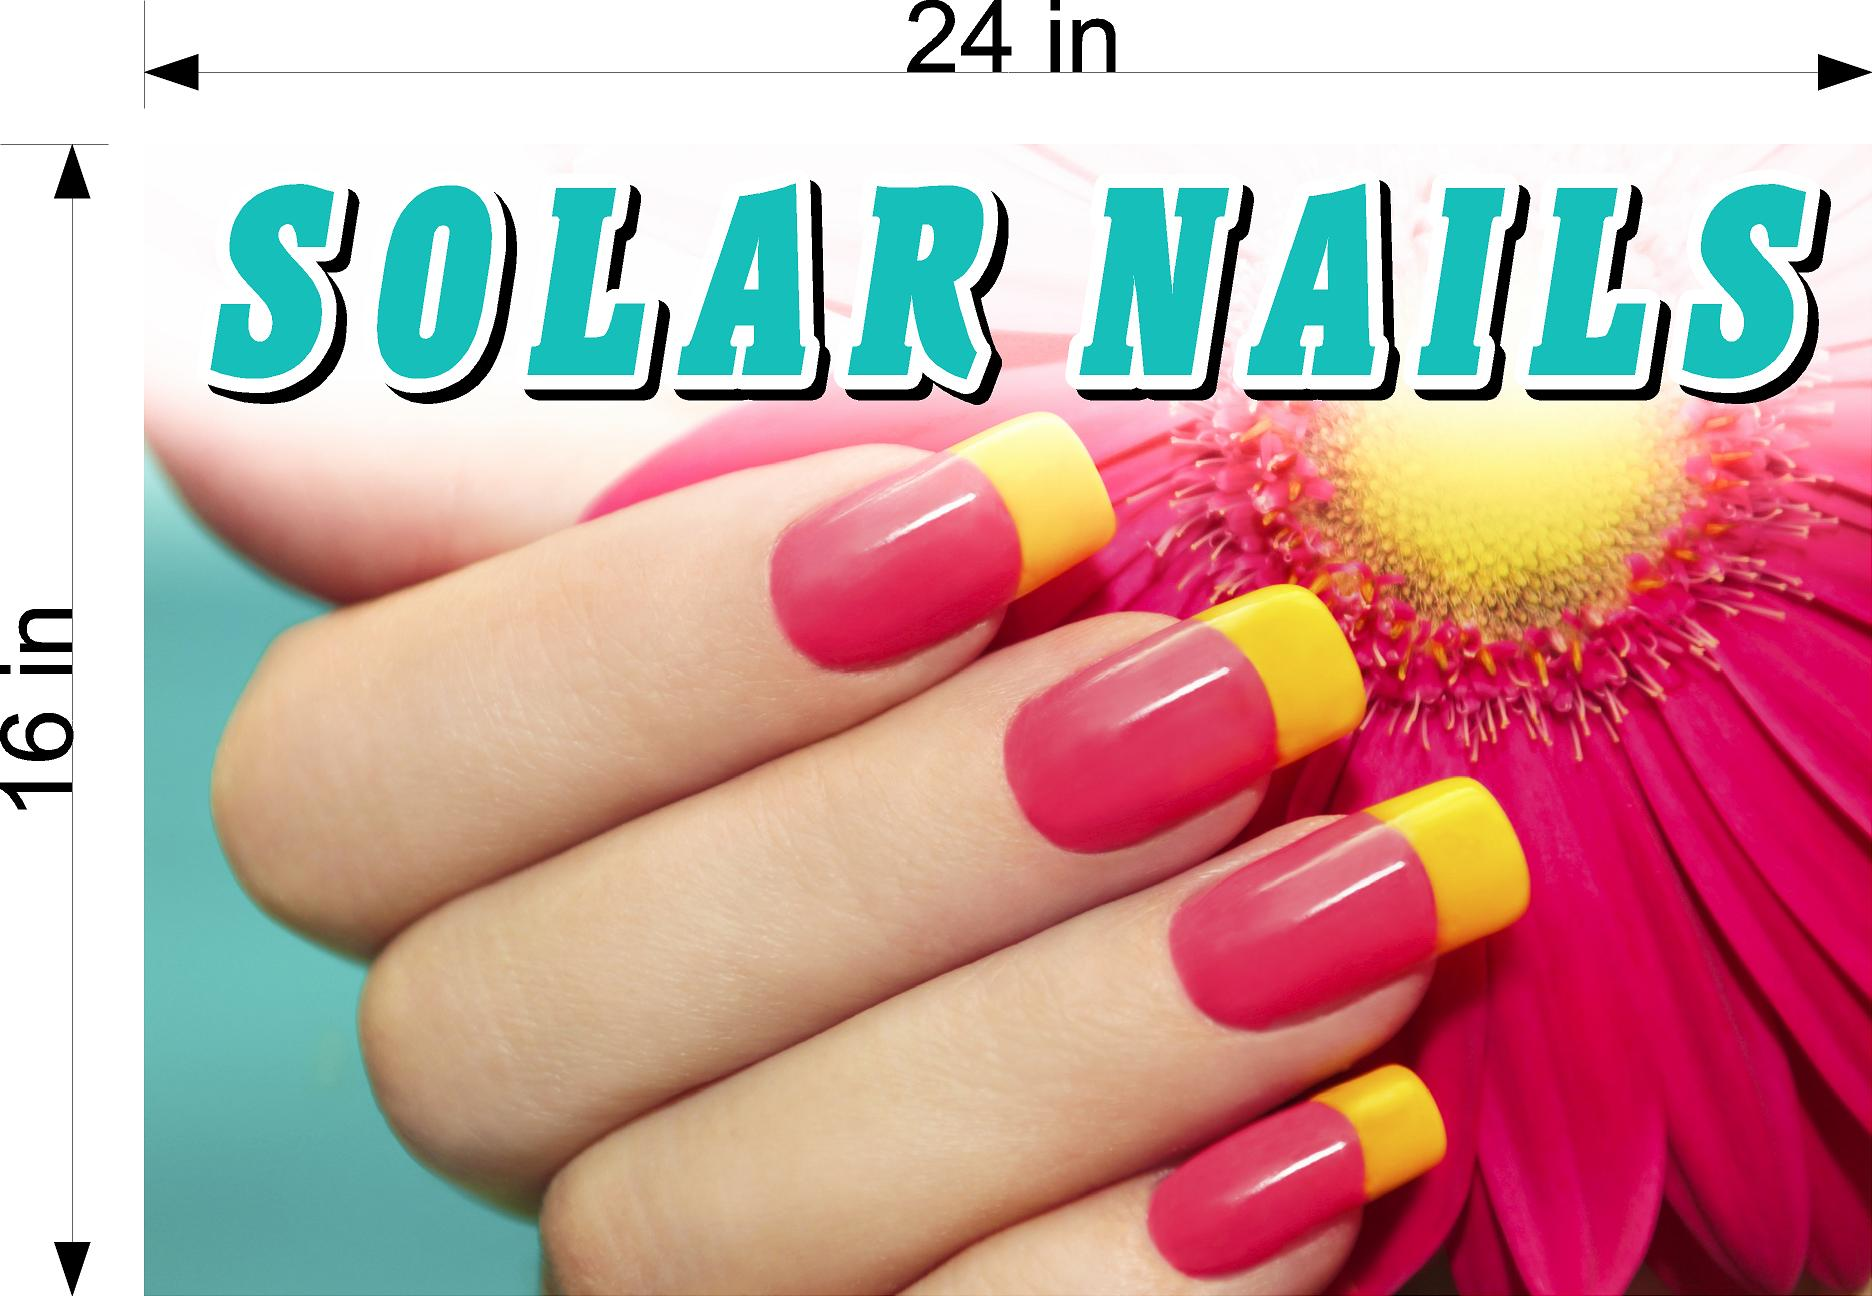 Solar 08 Photo-Realistic Paper Poster Premium Matte Interior Inside Sign Advertising Wall Window Non-Laminated Nail Salon Horizontal